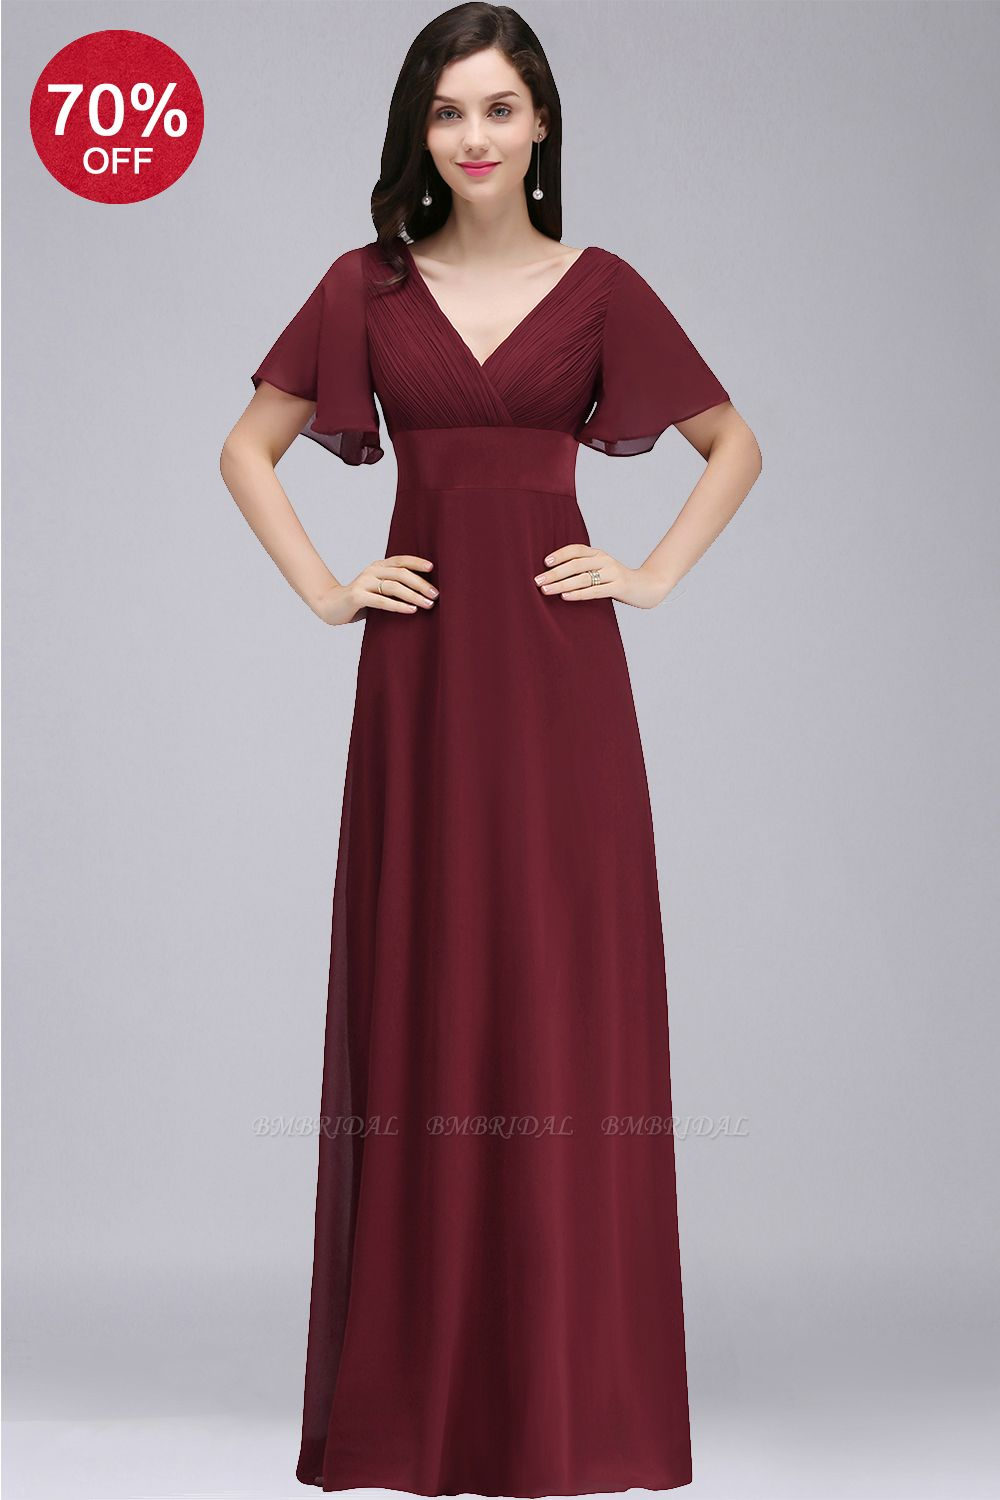 BMbridal Affordable Chiffon Burgundy Long Bridesmaid Dresses with Soft Pleats In Stock